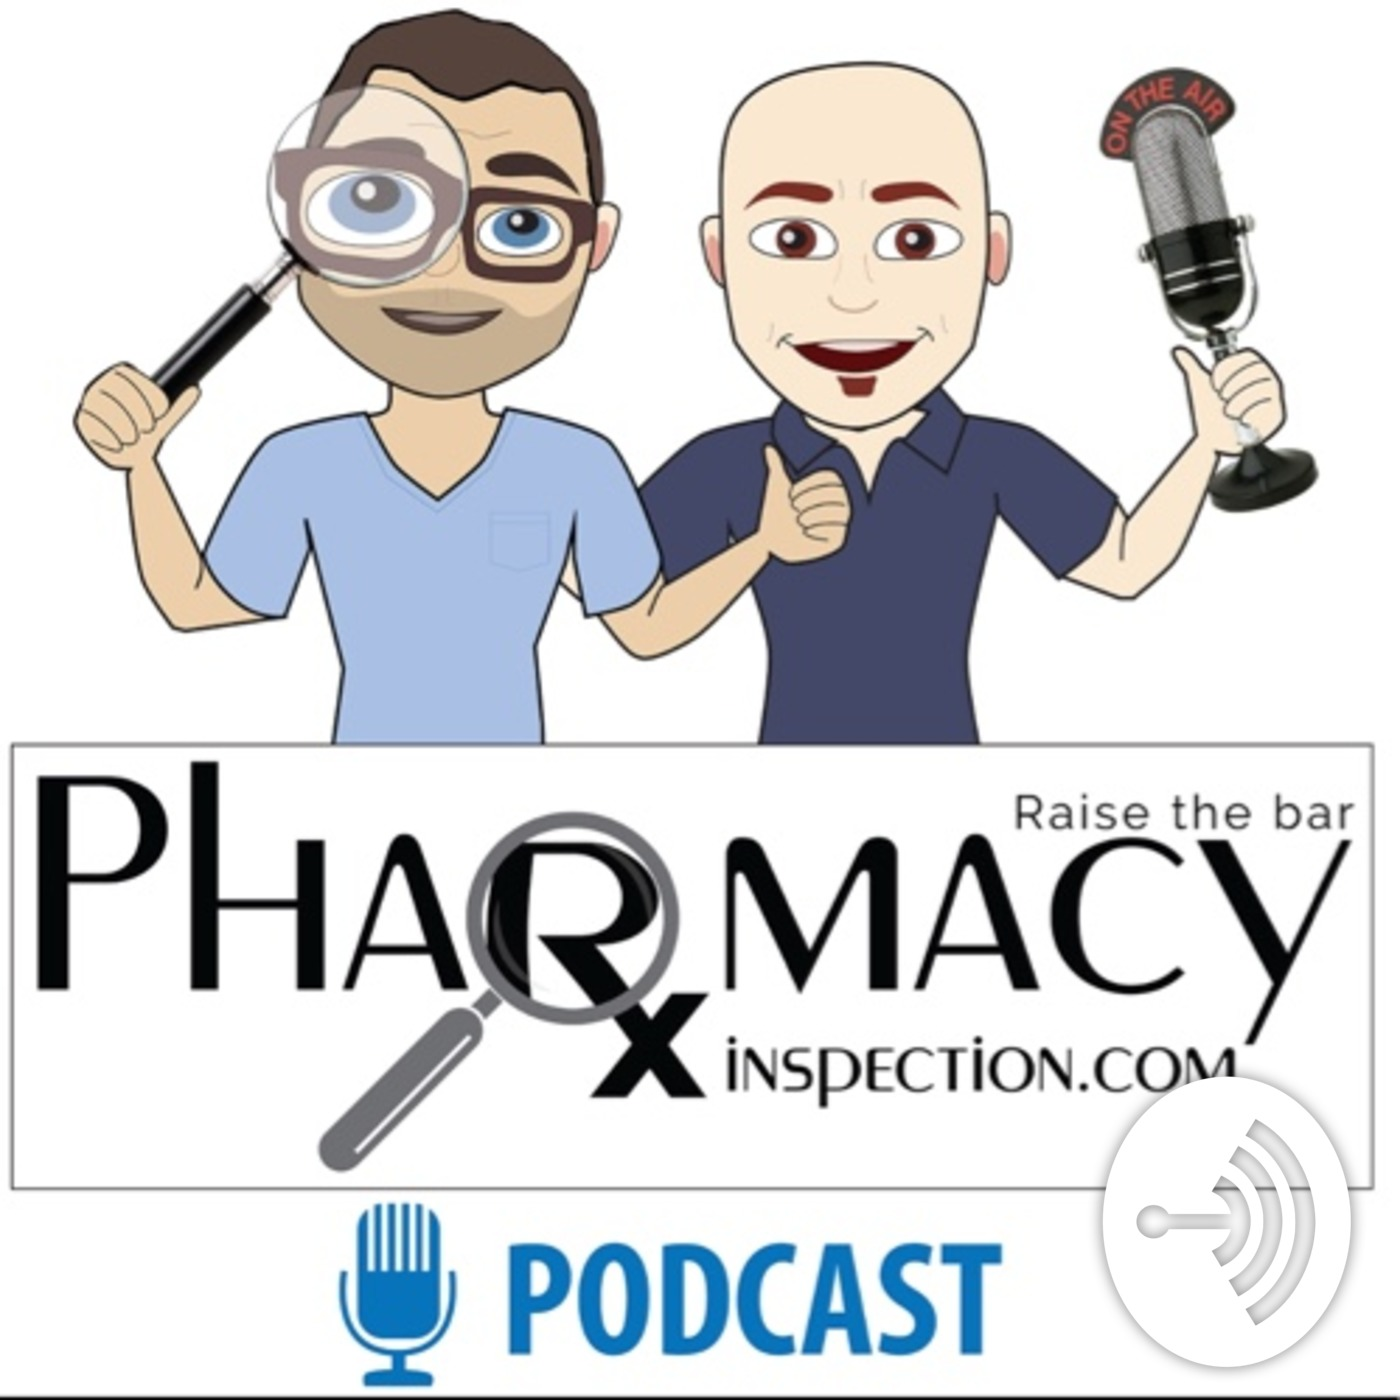 Pharmacy Inspection Podcast Episode 17 - Erika Fallon